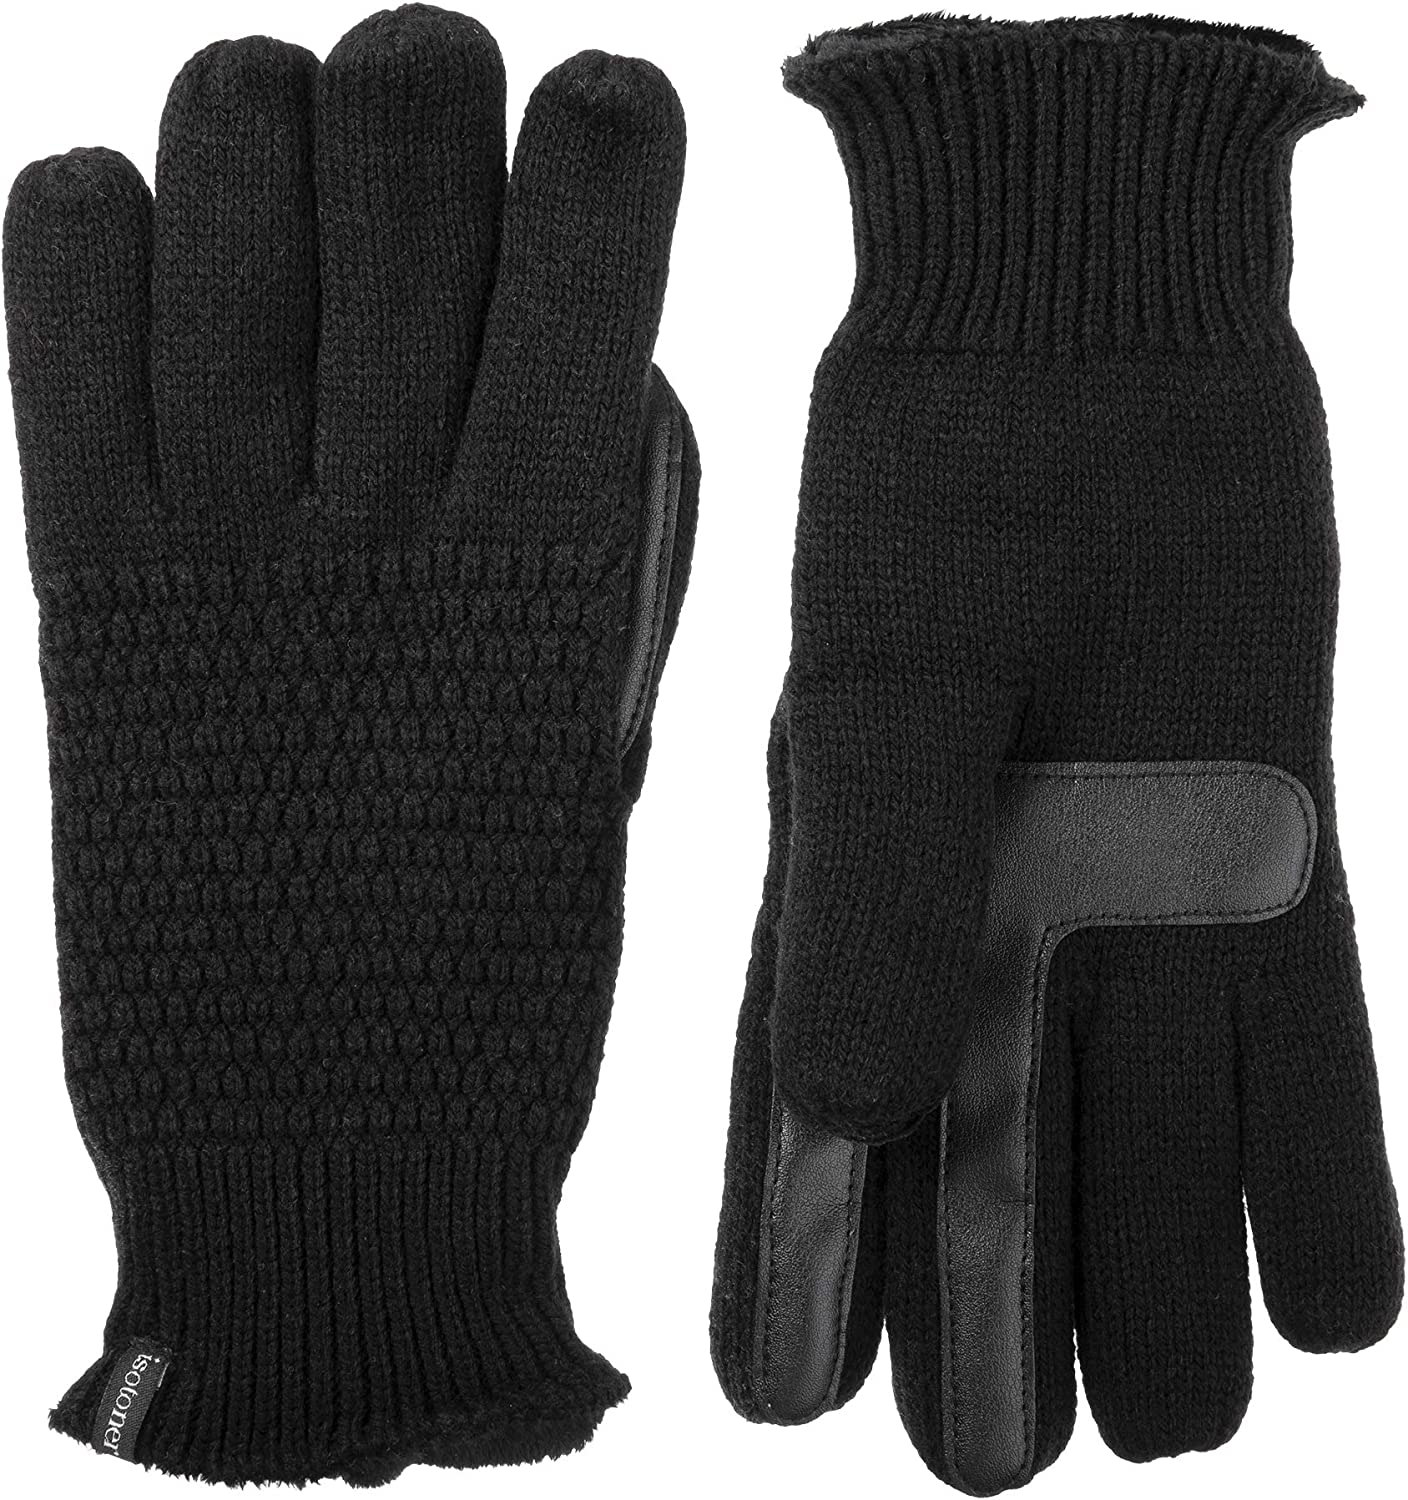 Isotoner Women's Winter Stretch Gloves Driving Warm Fleece Lining Black Gift N